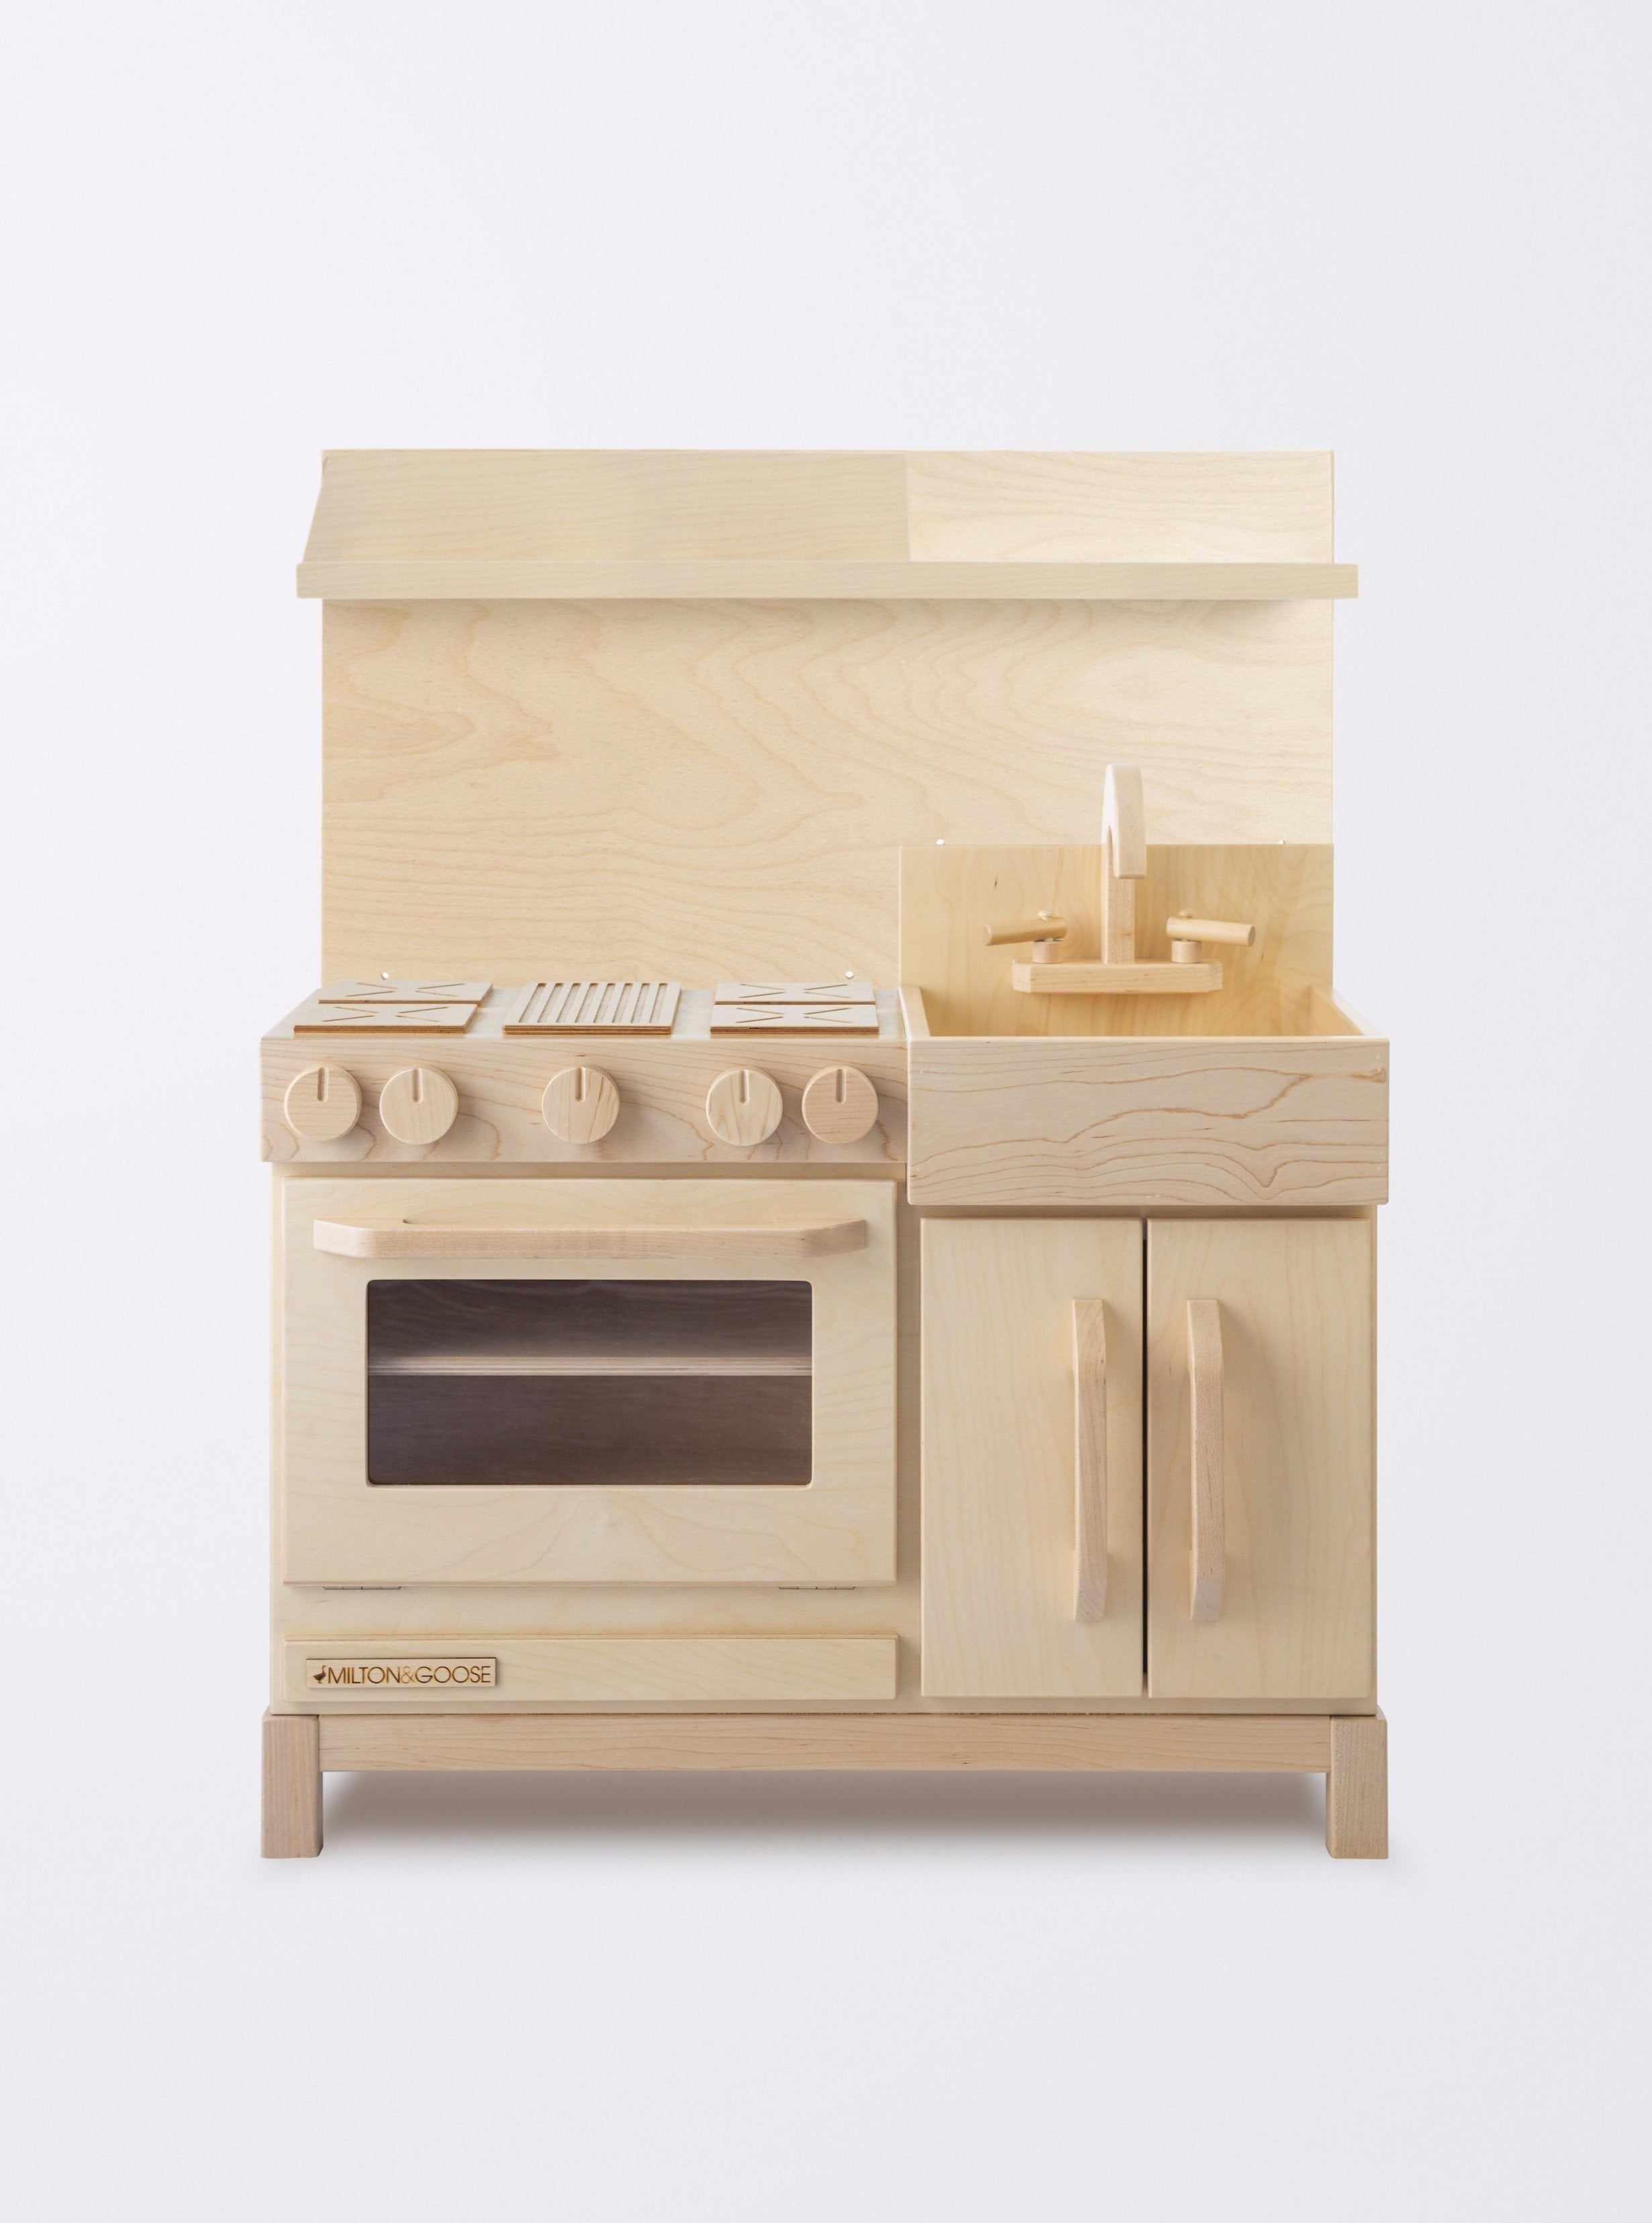 Essential Kitchen Hood by Milton & Goose